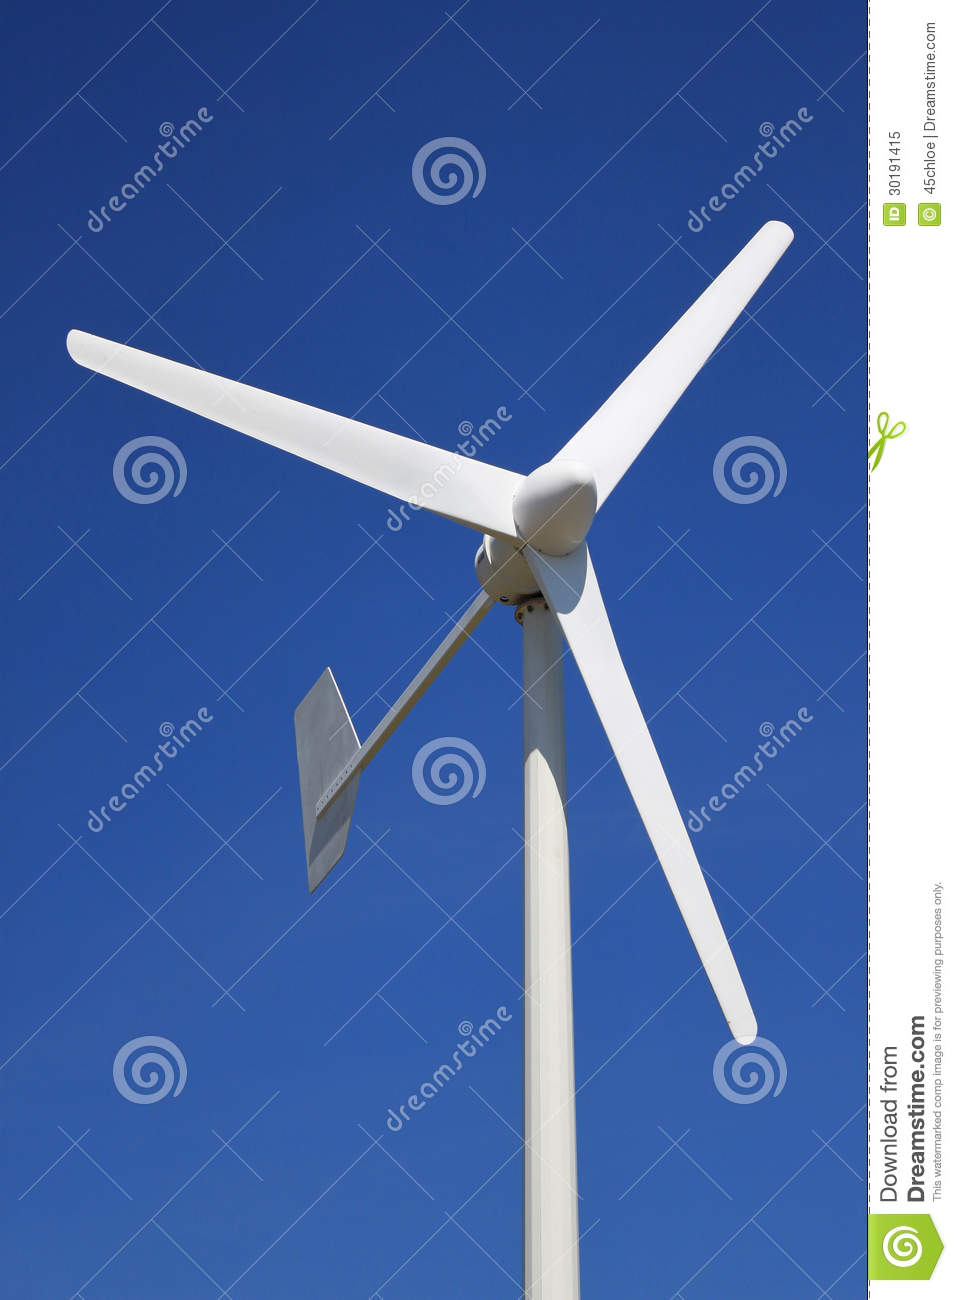 wind turbine for renewable energy on a background of blue sky.